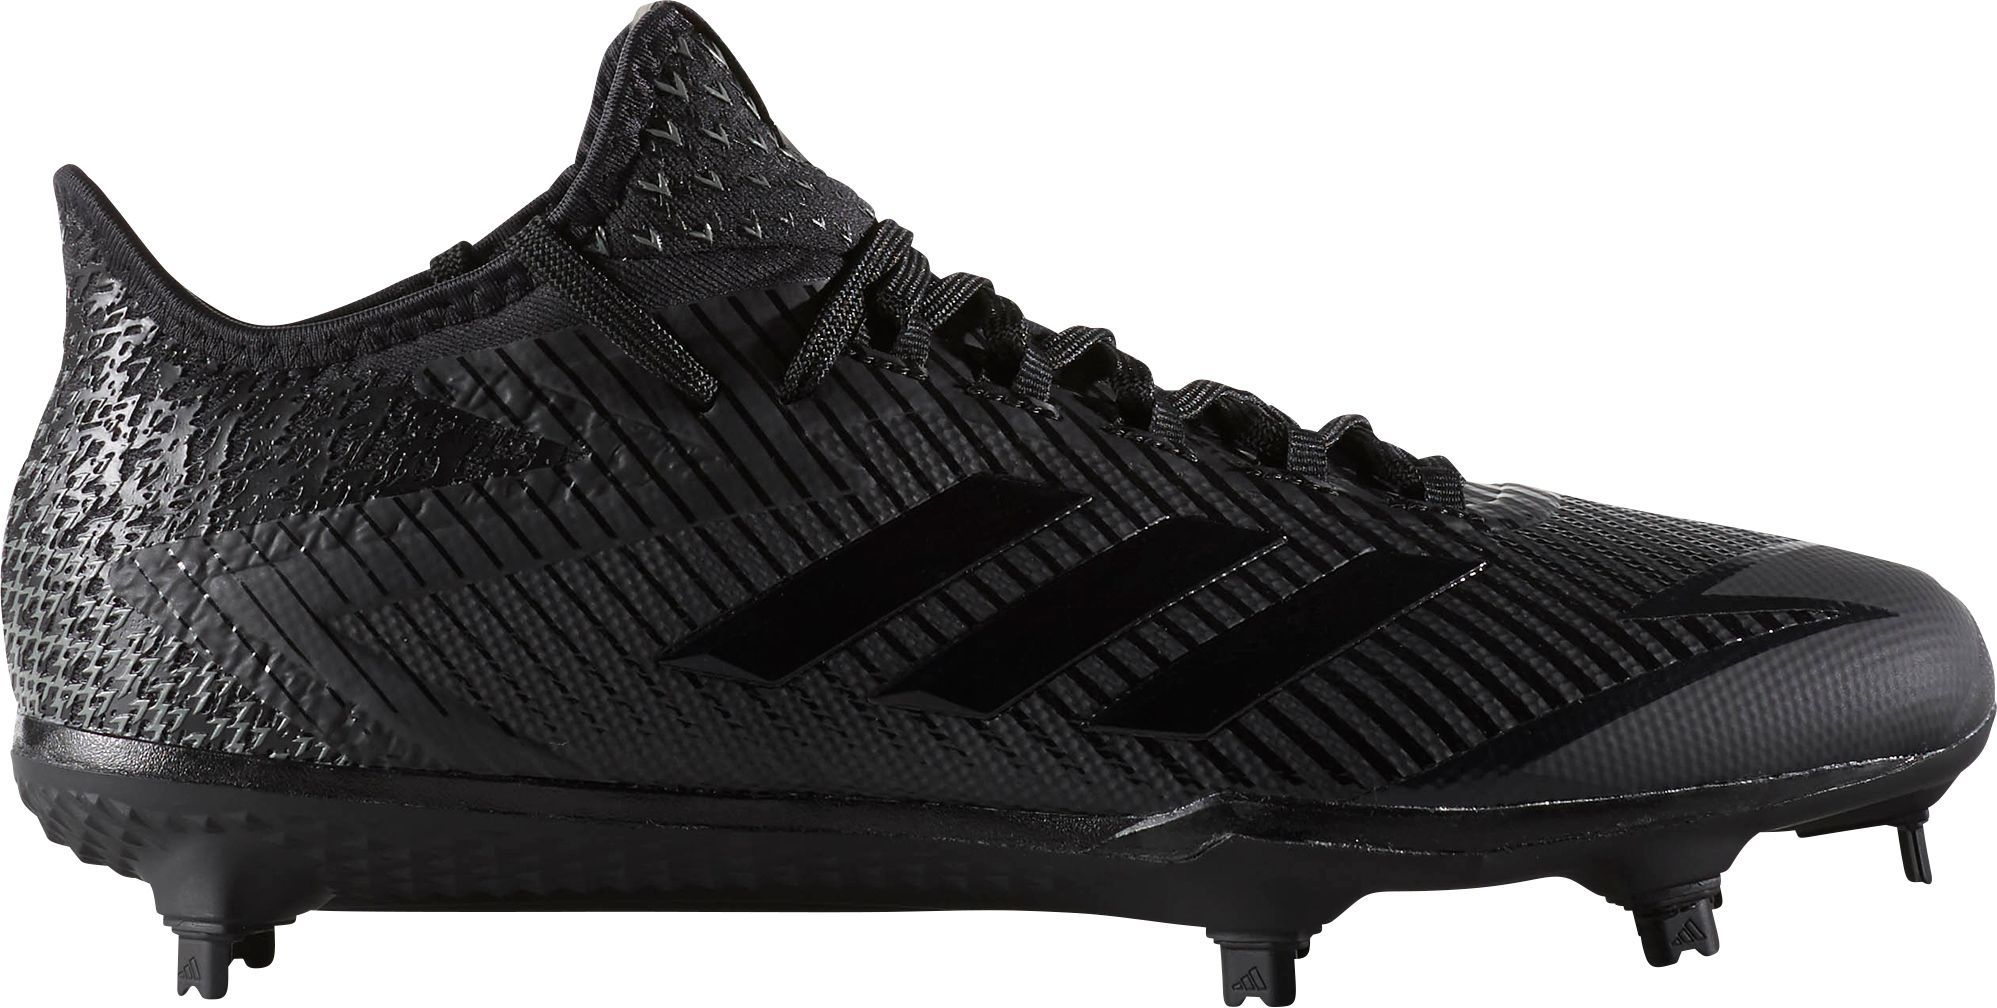 check out 26096 71246 adidas Men s adizero AfterBurner 4 Dip Baseball Cleats, Size  14.0, Black